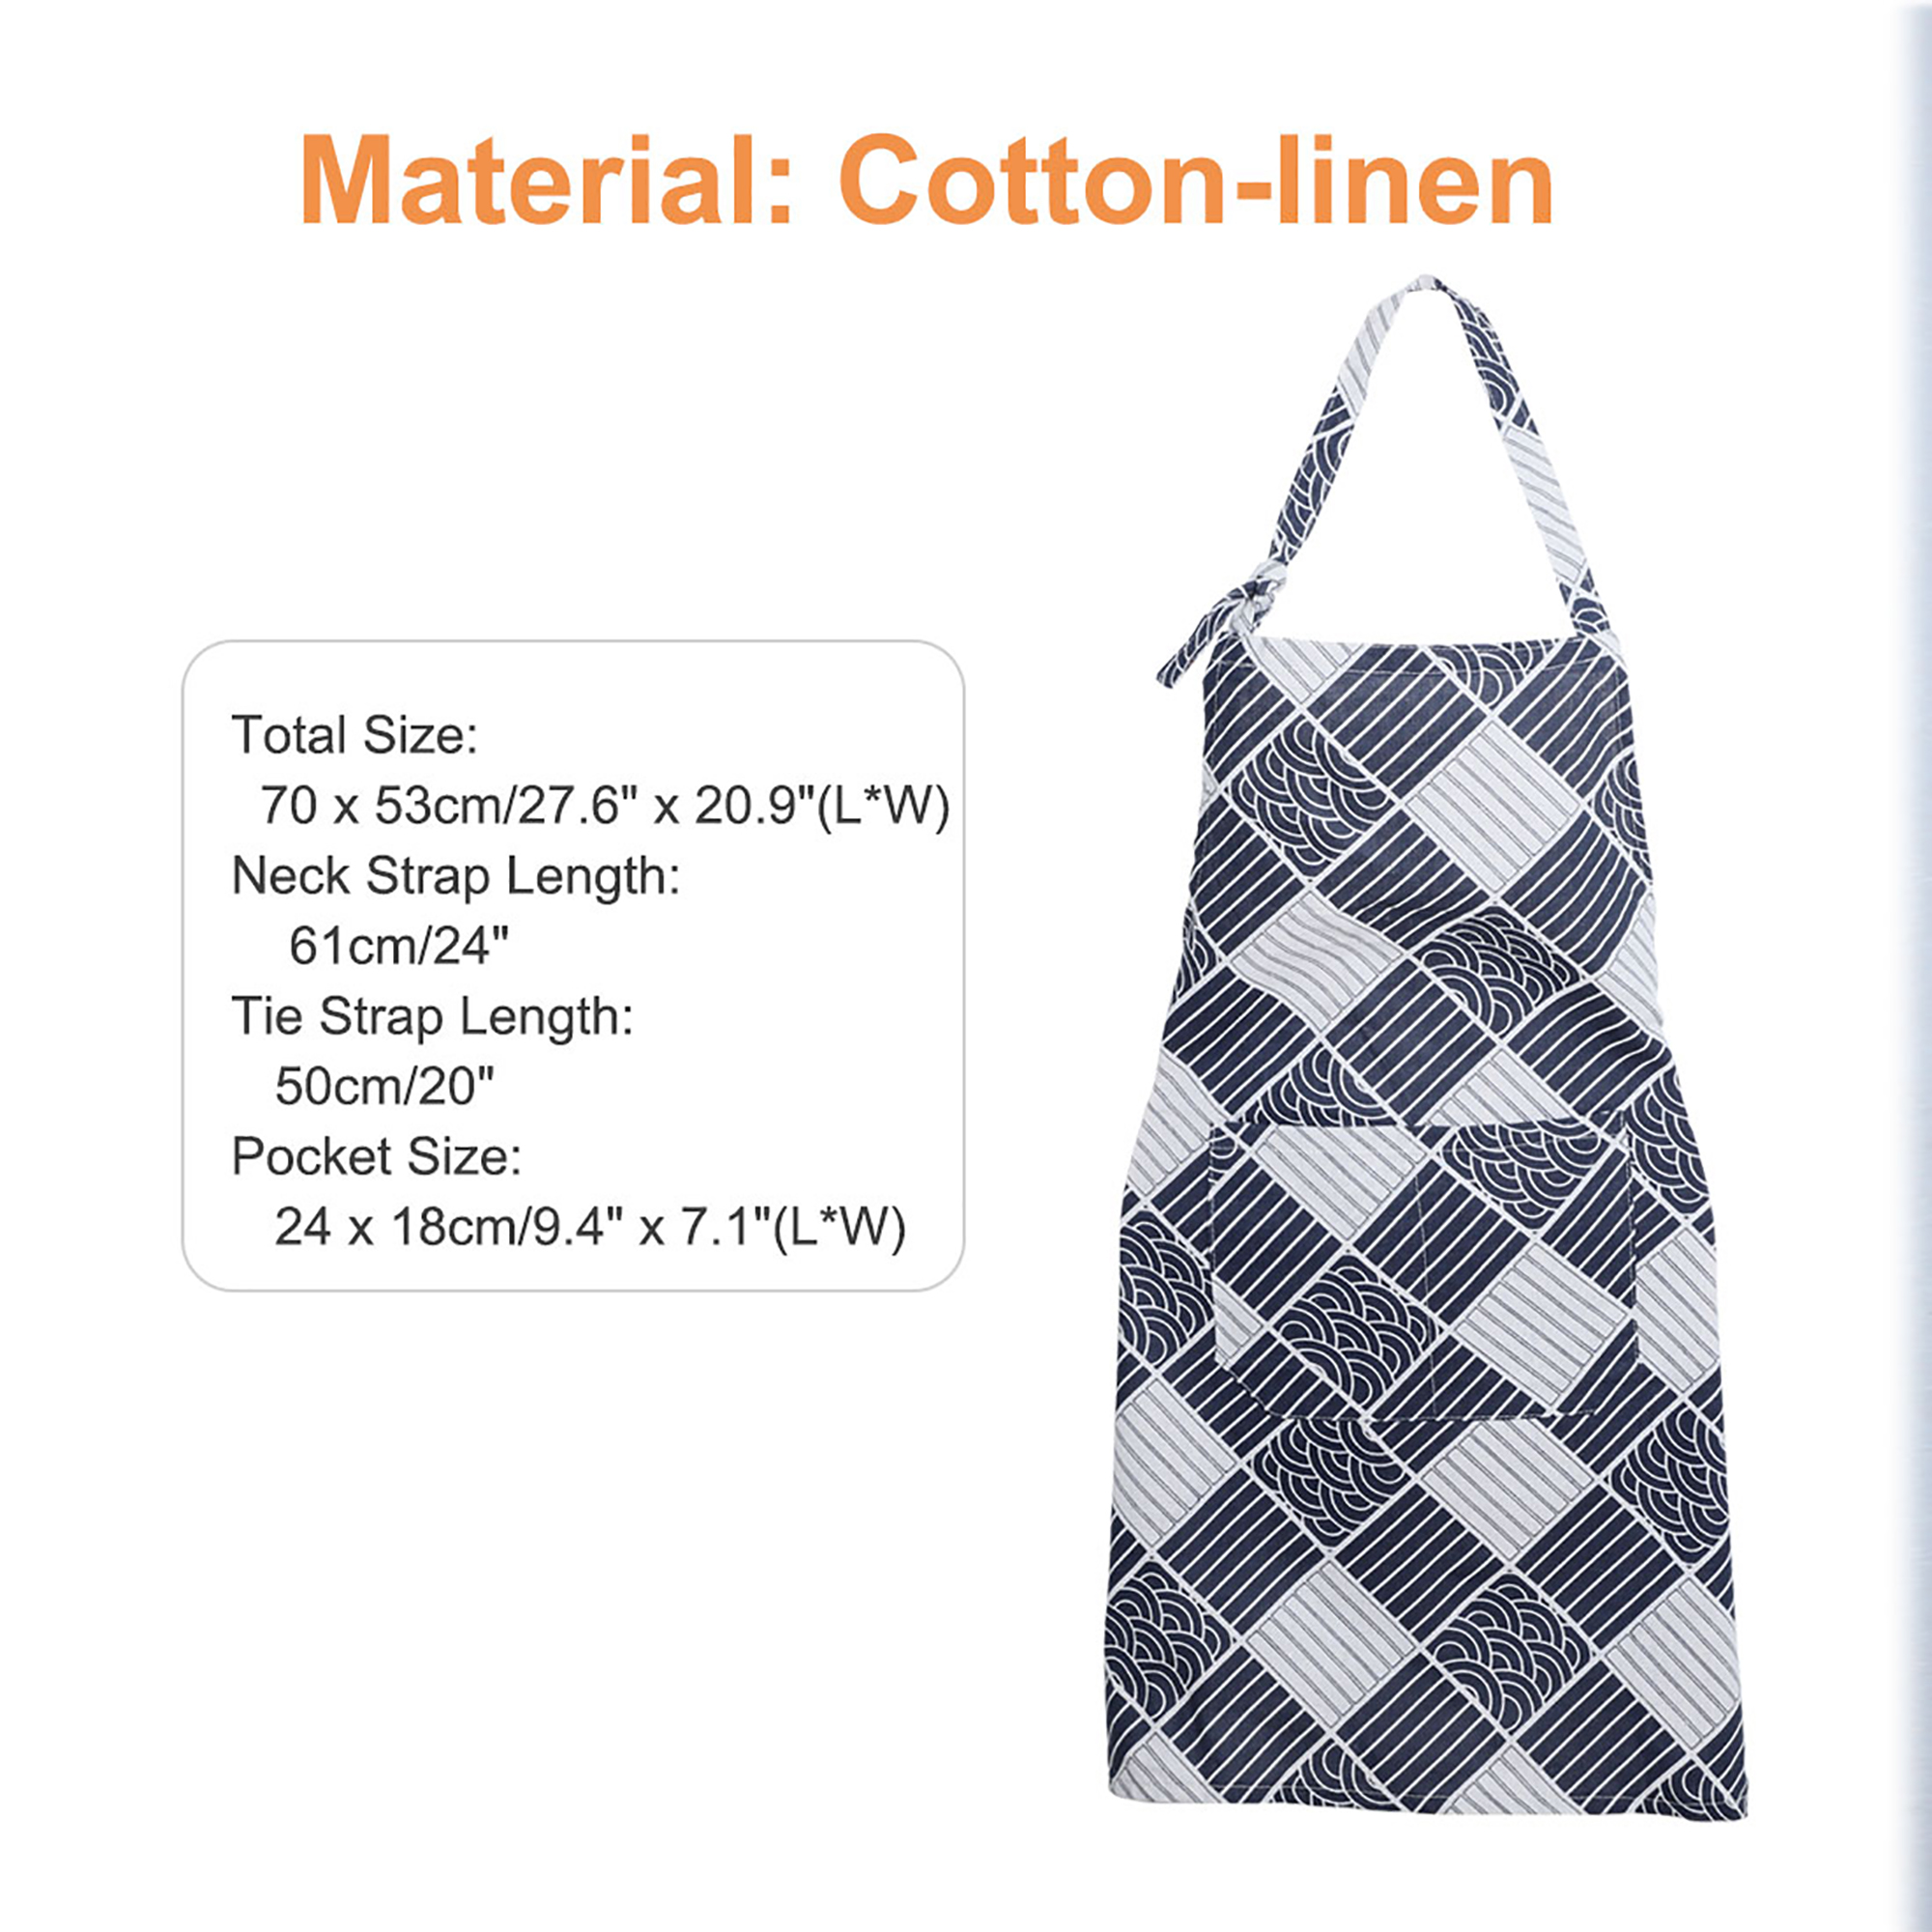 Young Living Essential Oils Apron Cotton With Pockets With Child One 2 Total